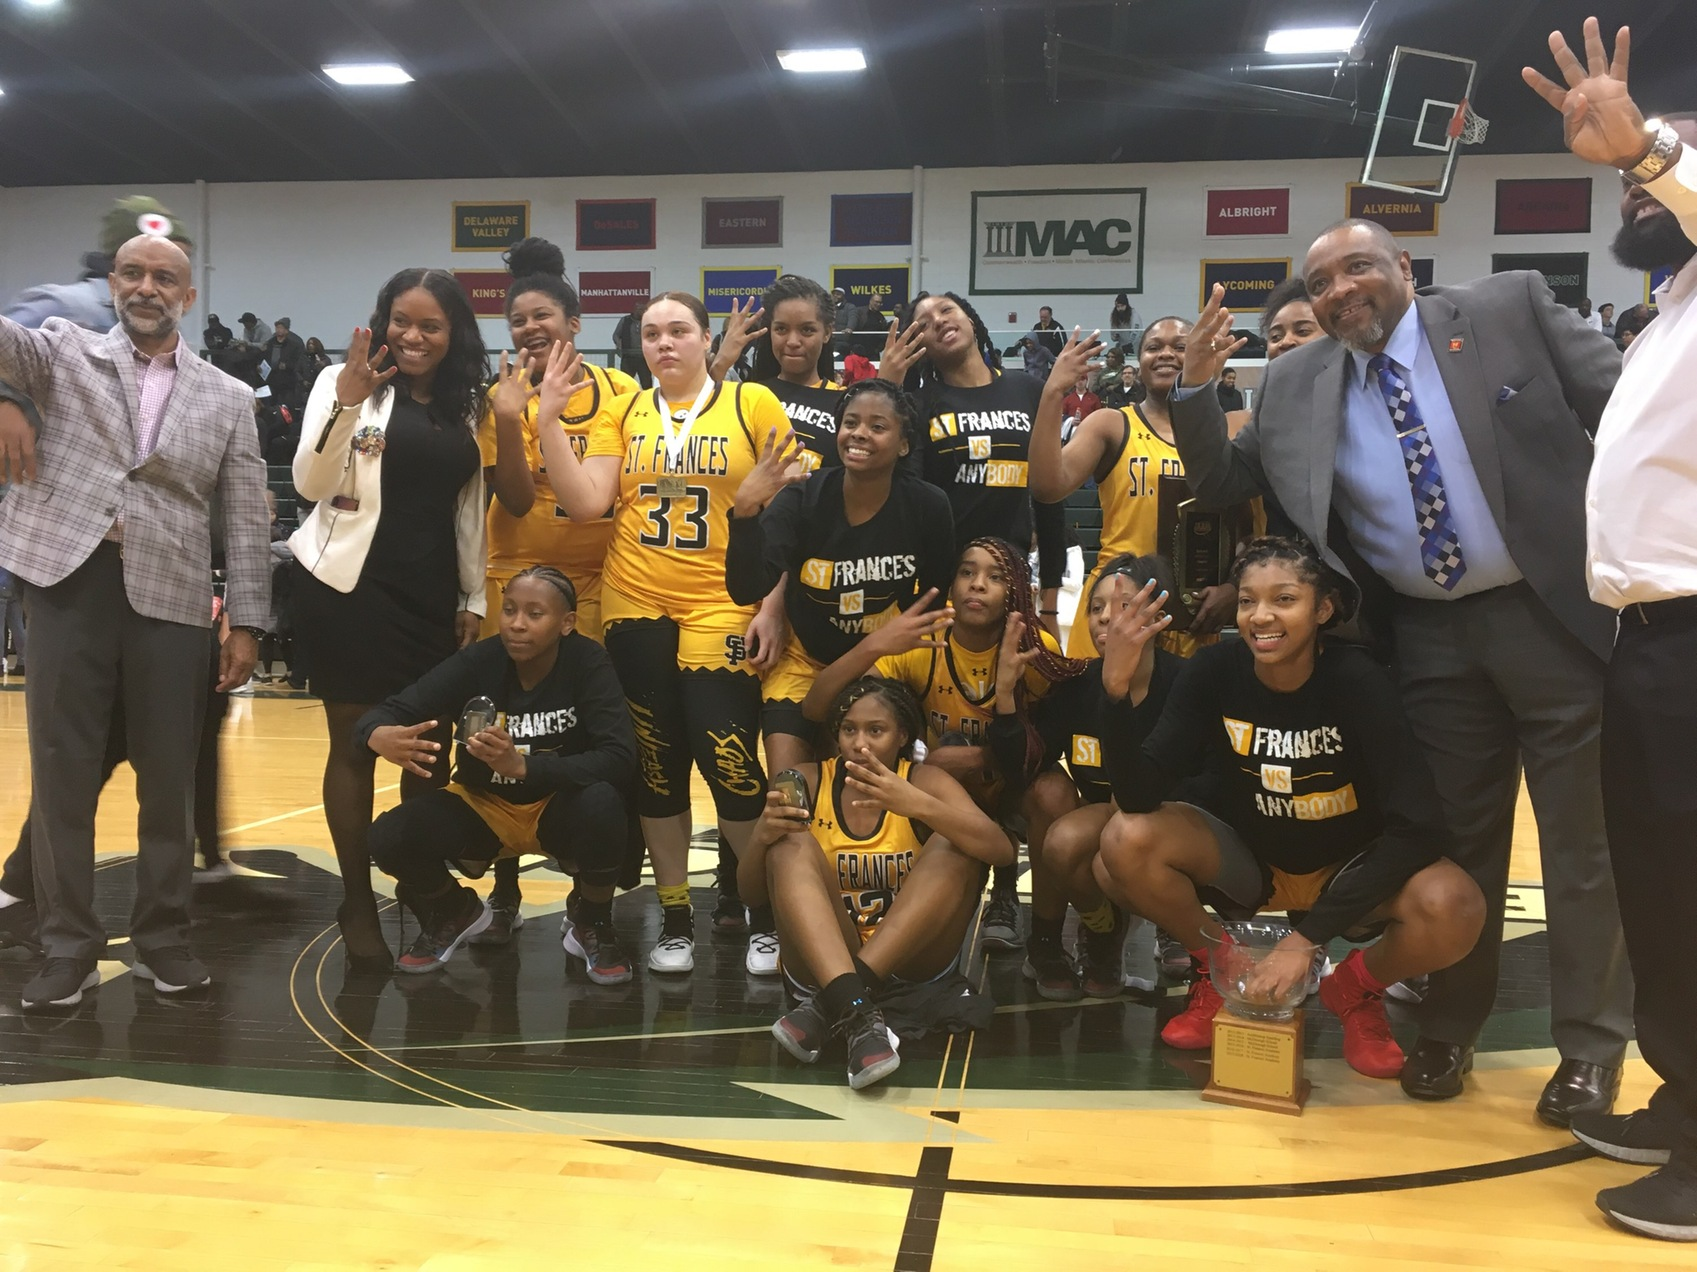 St. Frances takes fourth straight A Conference basketball title